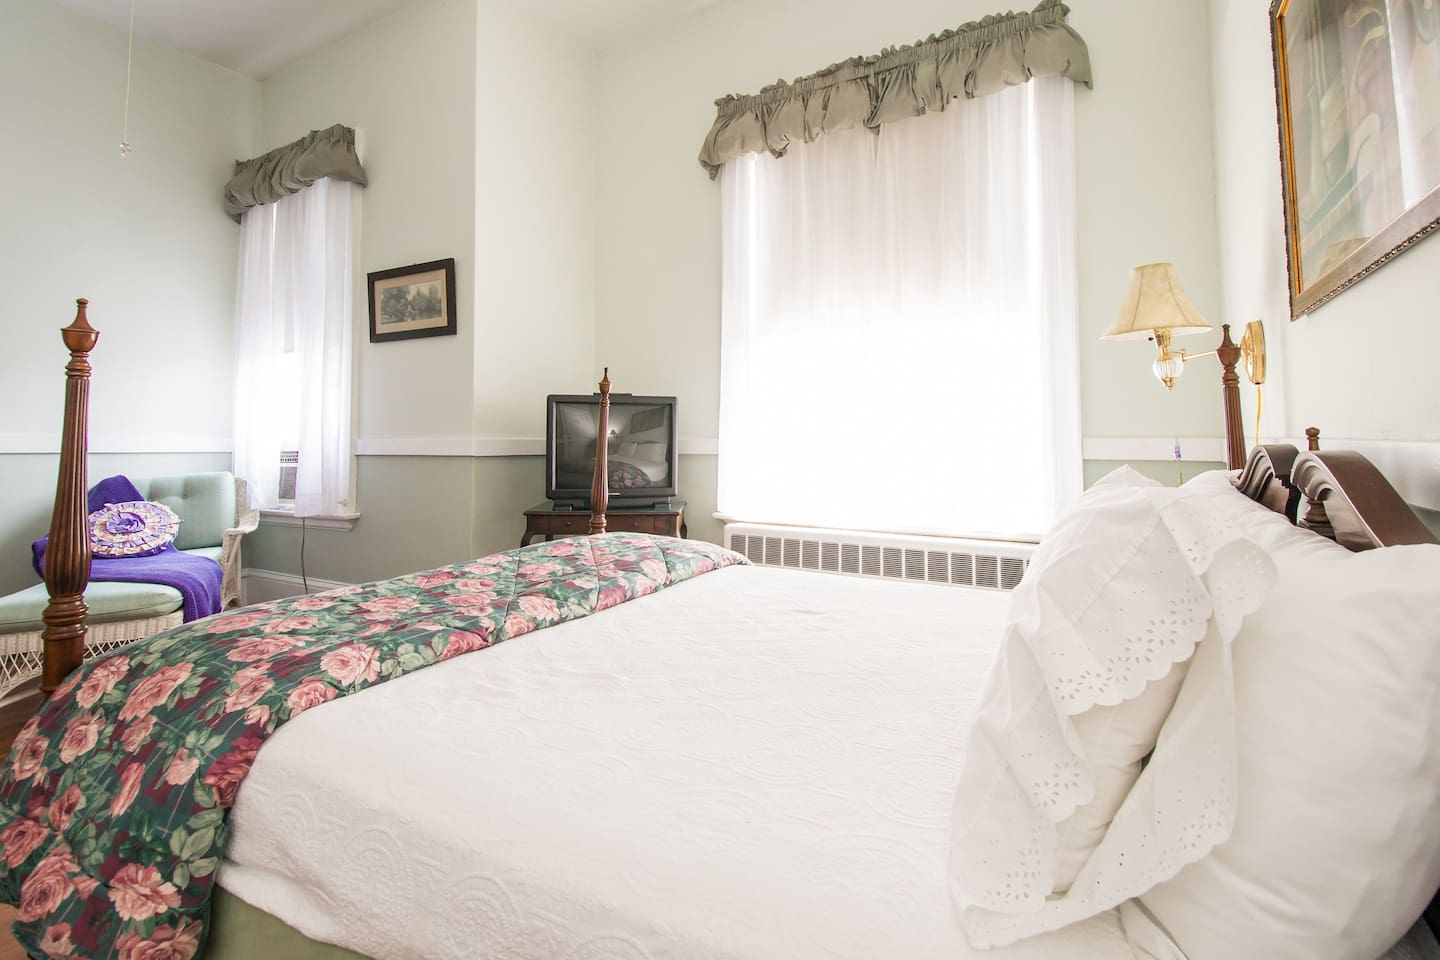 Sunny Room on Bellevue Ave. with private bath in B&B